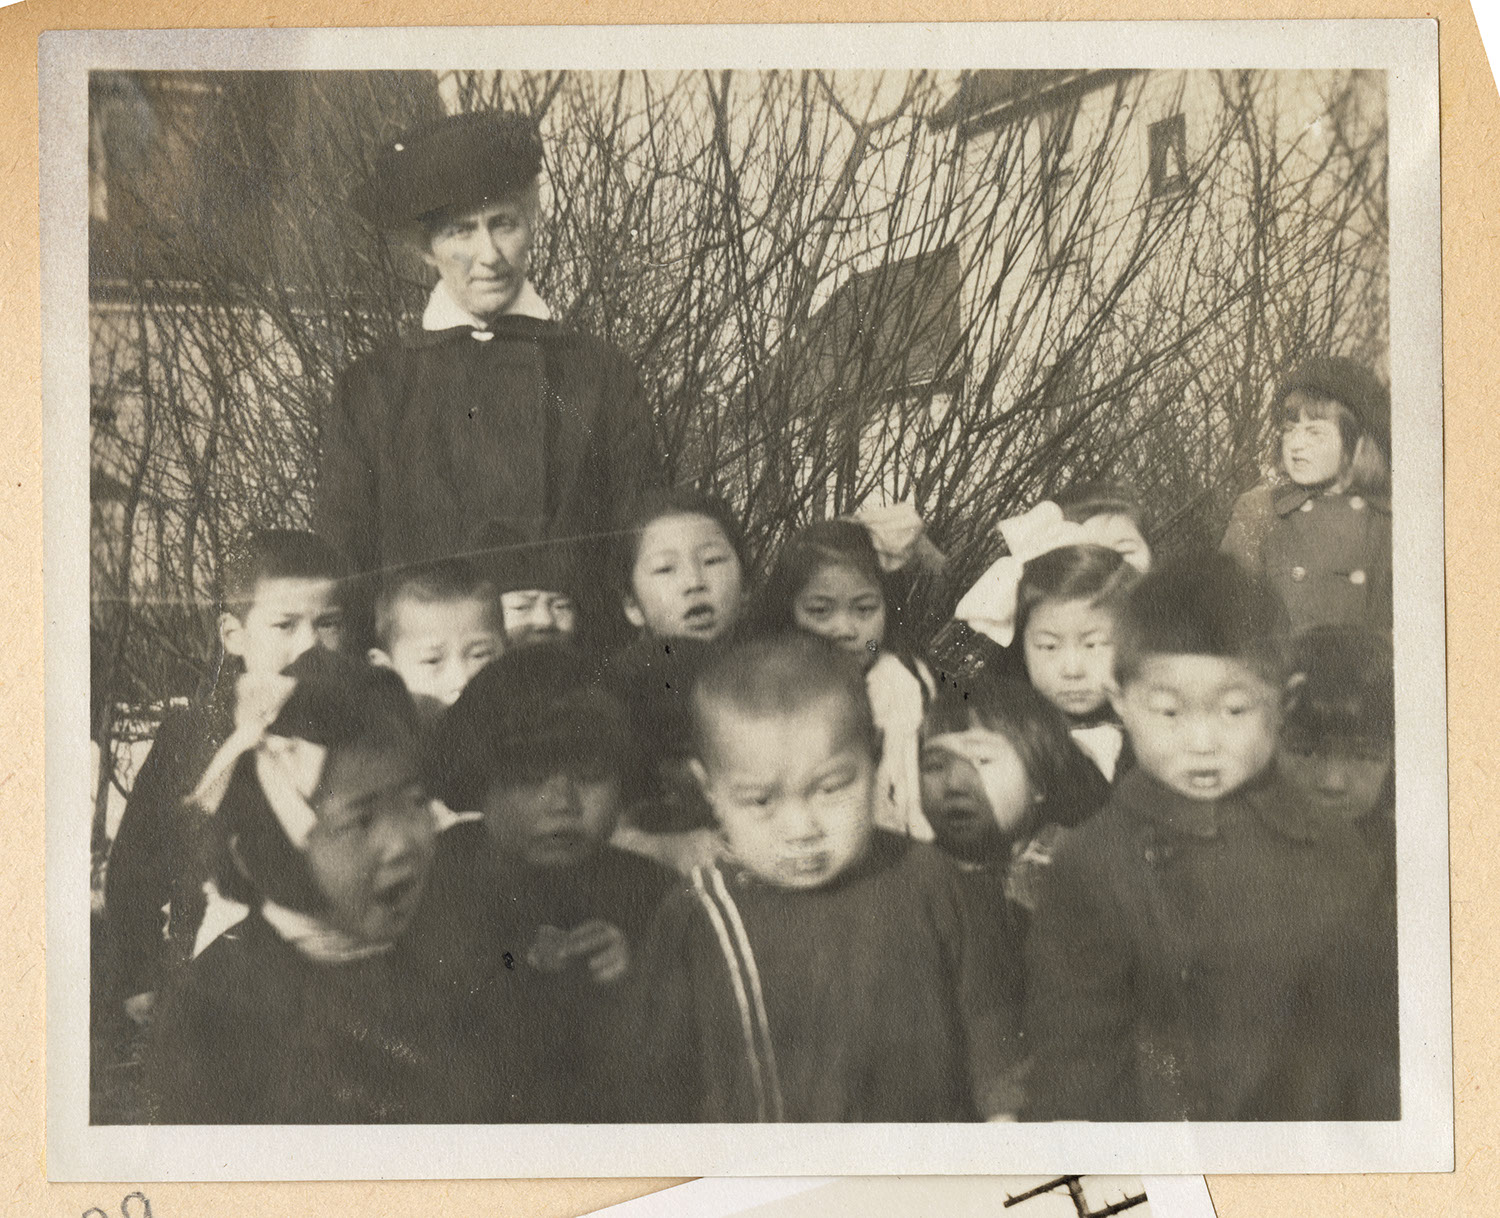 Jessie Howie with a group of children